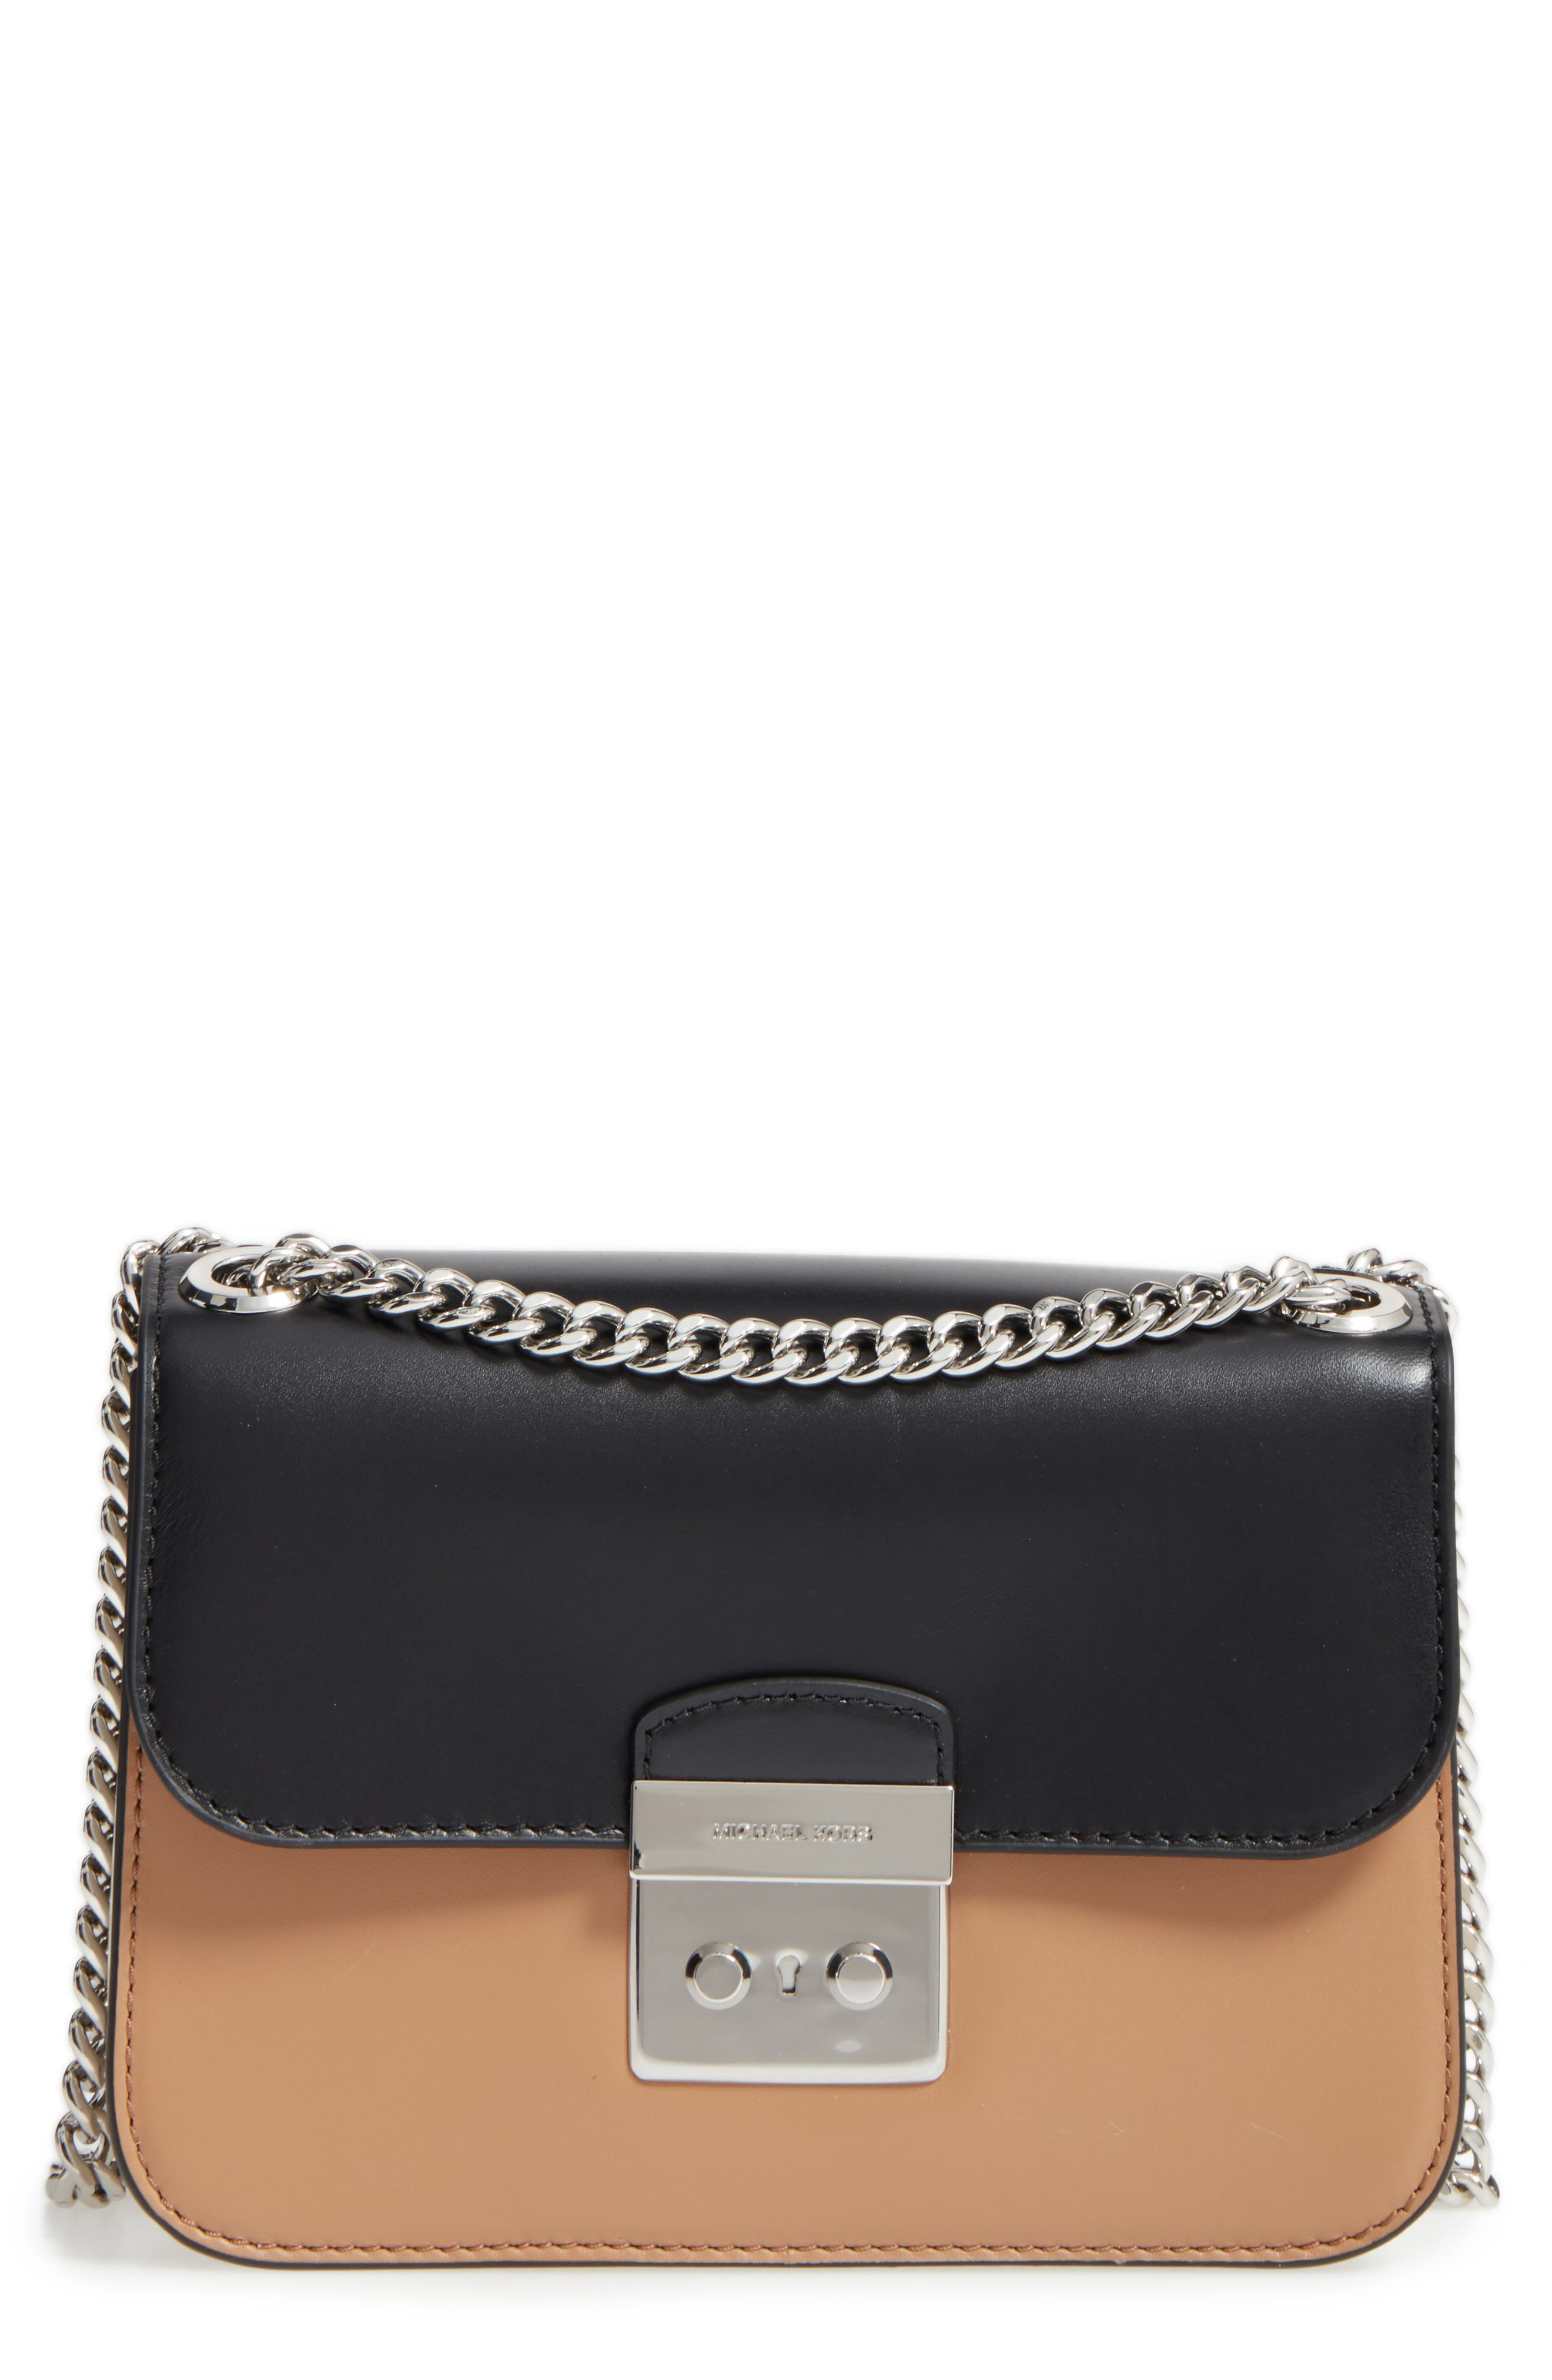 MICHAEL Michael Kors Medium Sloan Editor Shoulder Bag